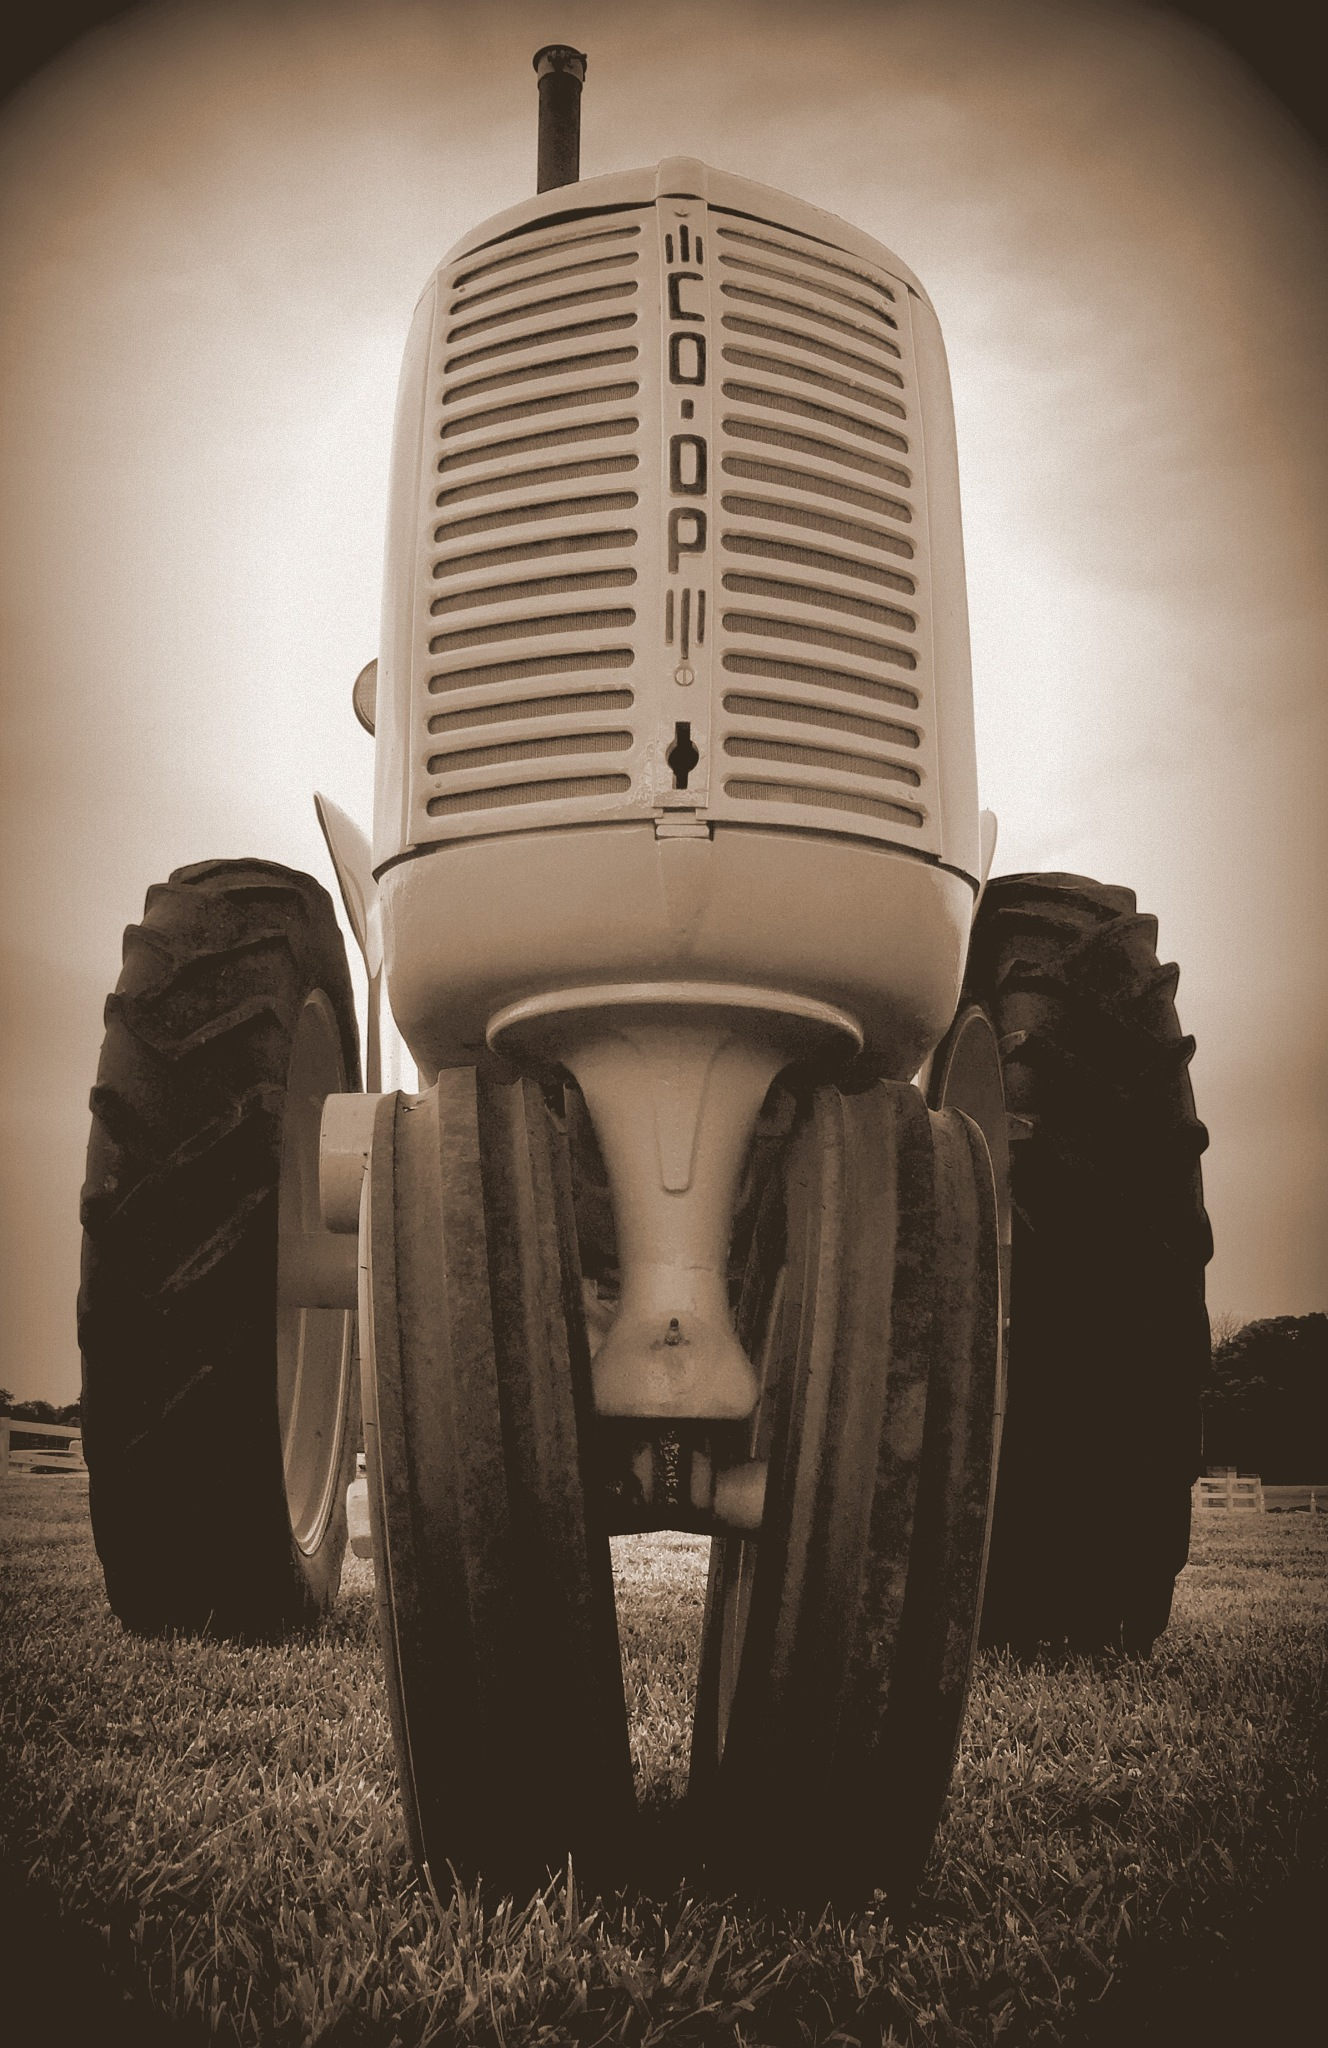 Tractor in Sepia by becky.c.jones.3